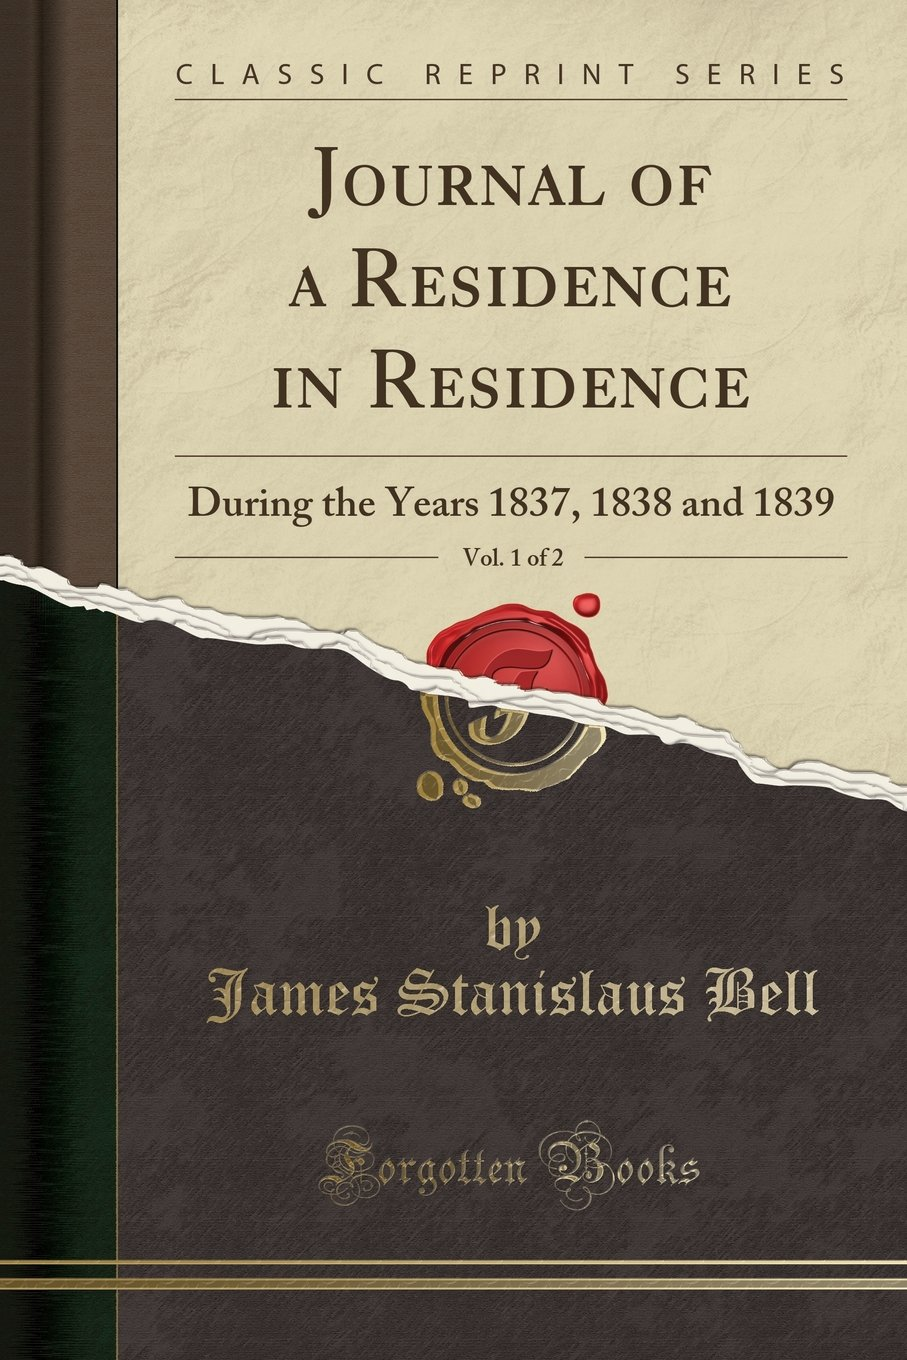 Journal of a residence in Circassia during the years 1837, 1838, and 1839 by James Stanislaus Bell (Vol. I & II)